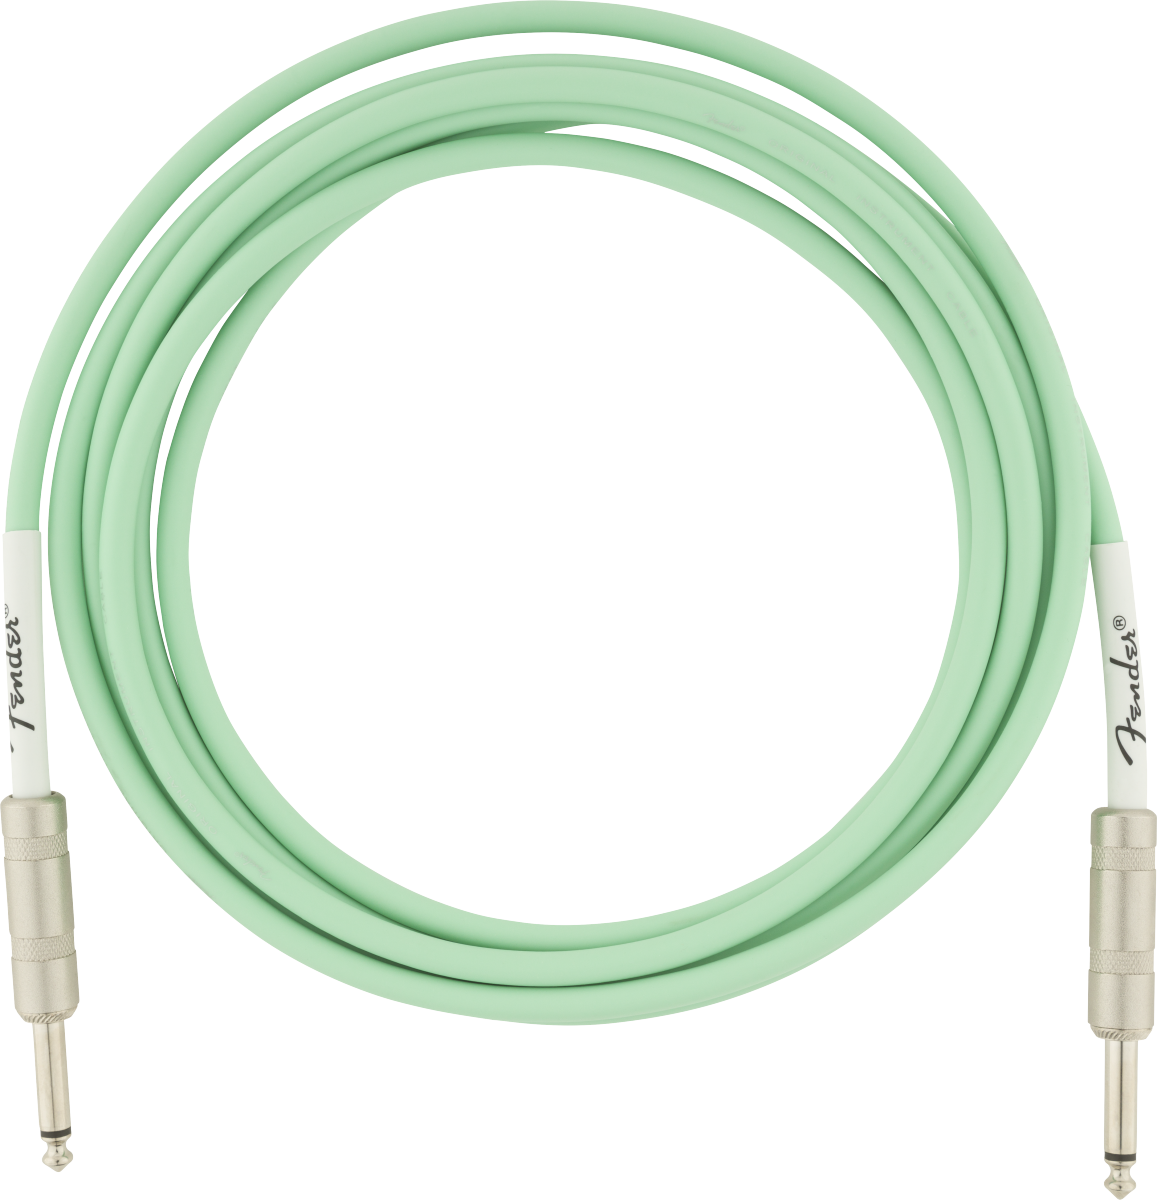 Fender Original Series Instrument Cable - 10' Surf Green